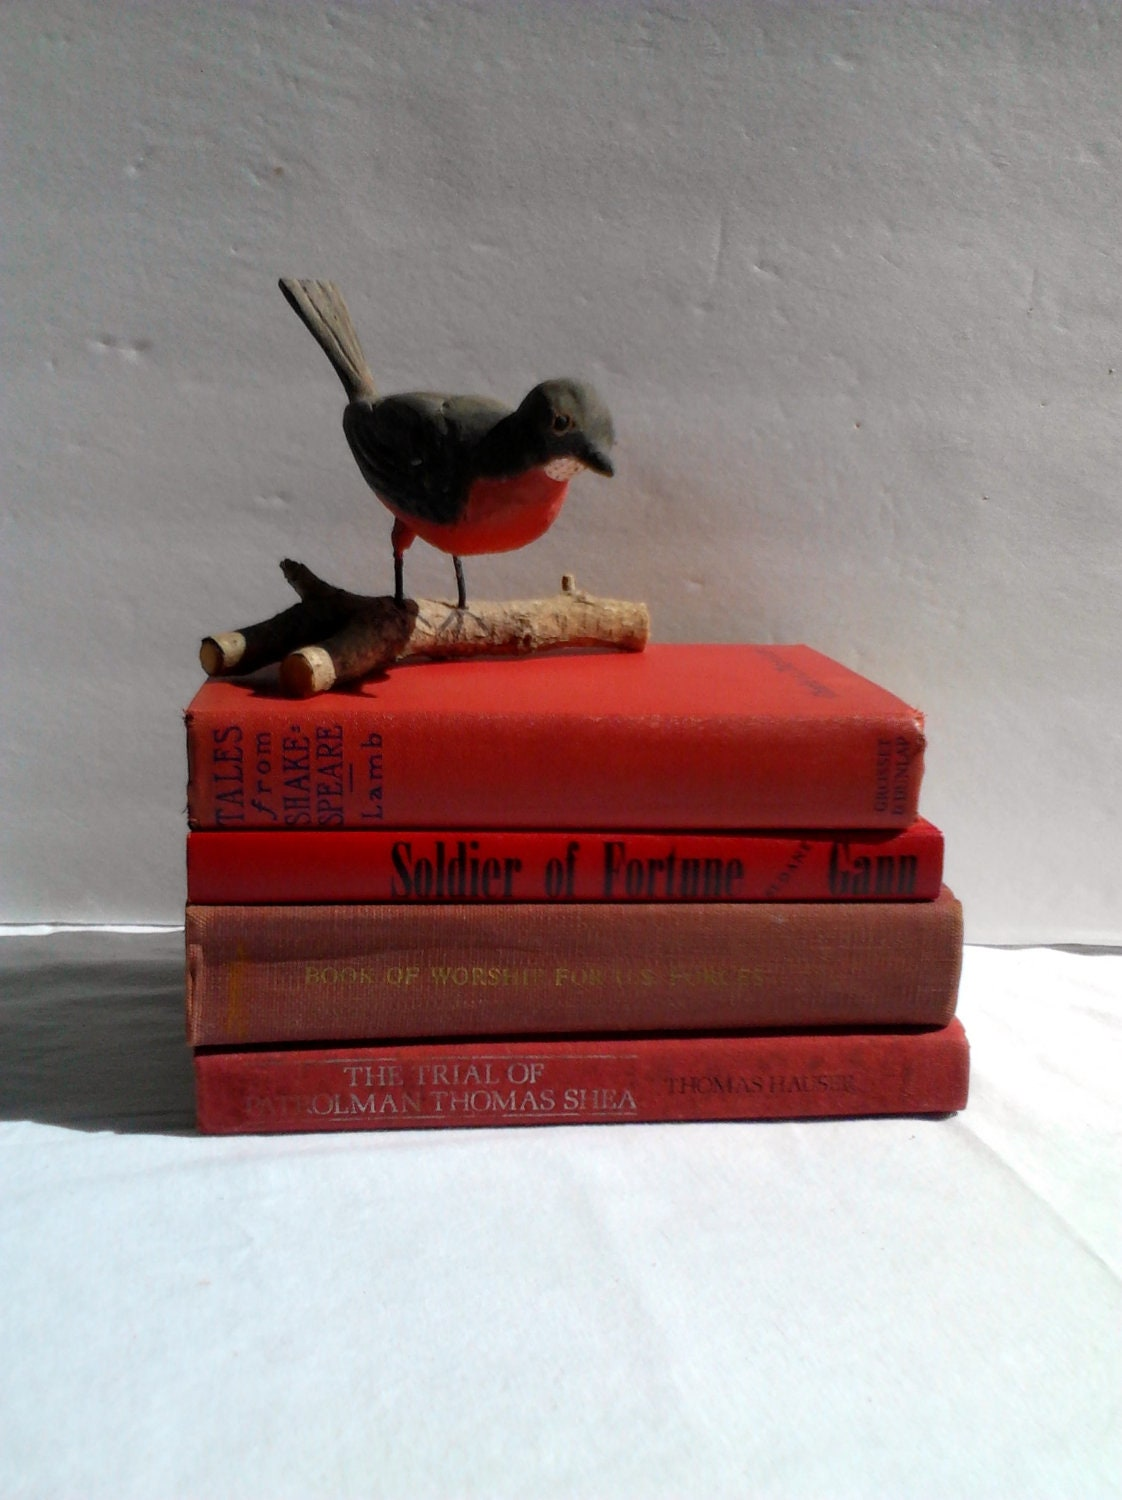 Vintage Red Book Collection Library Shakespeare/ Book of Worship / Soldier of Fortune - WeeLambieVintage